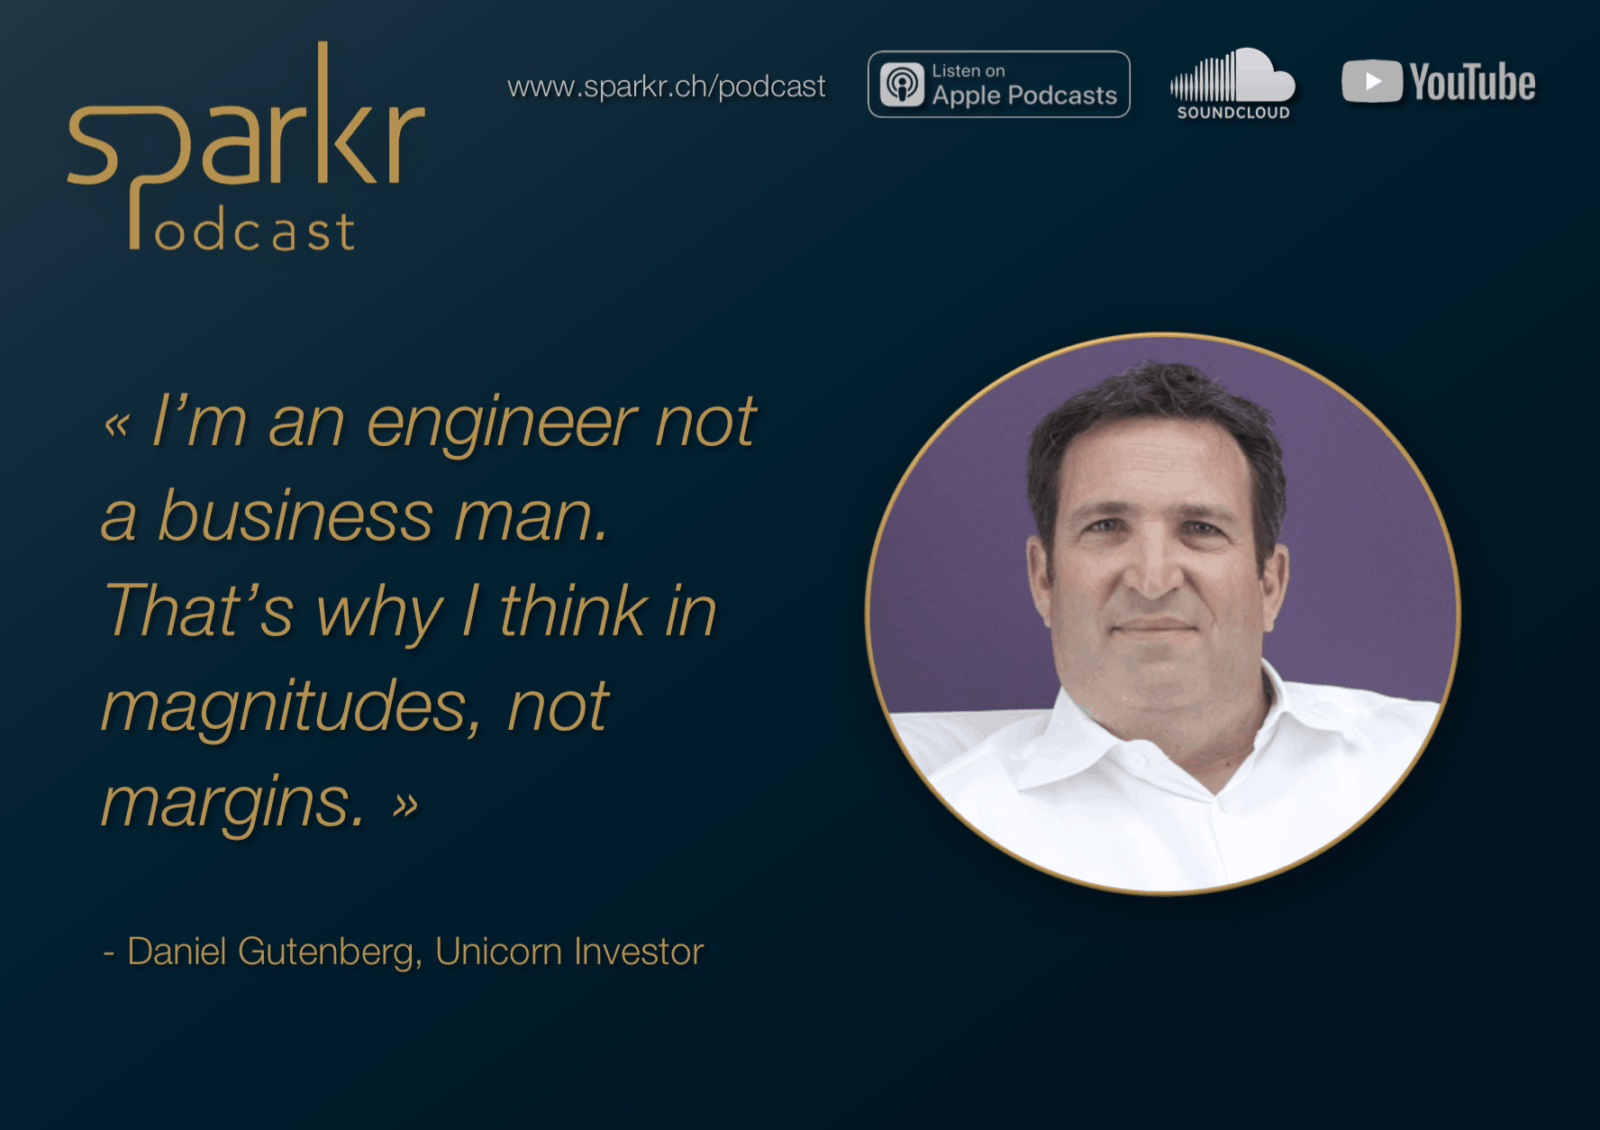 Sparkr Podcast Quote Daniel Gutenberg Magnitudes